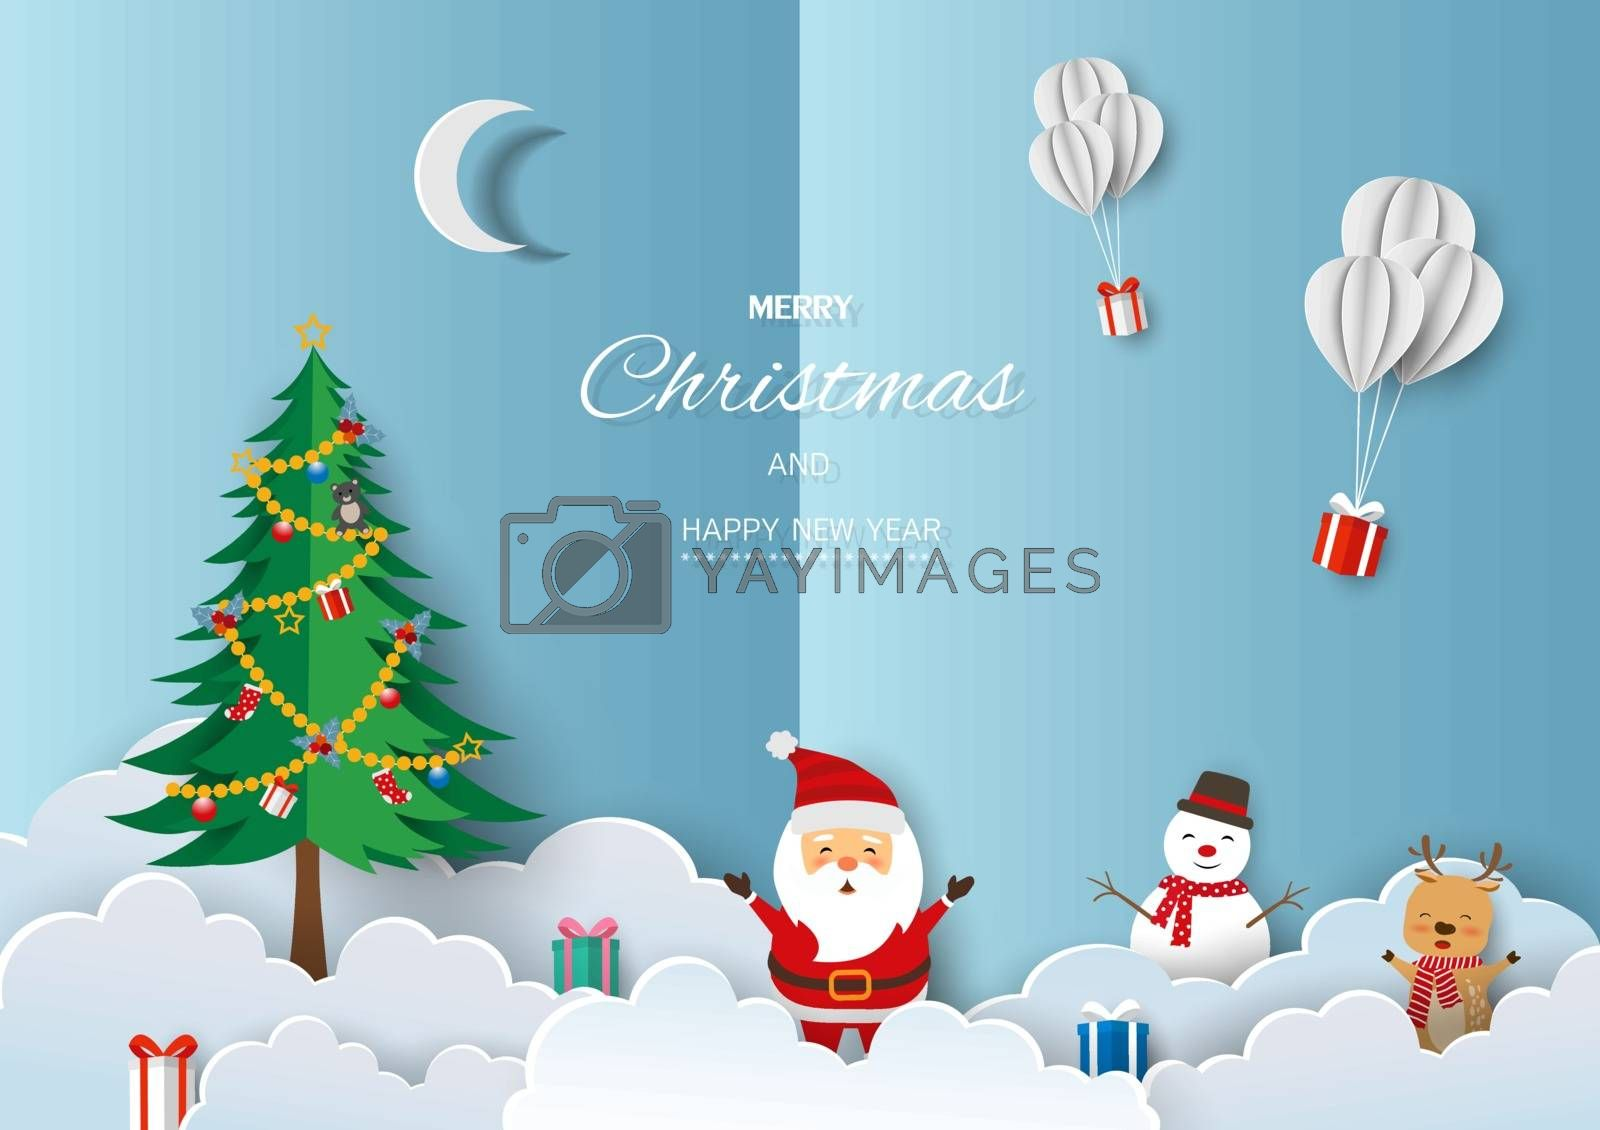 Merry Christmas and Happy new year greeting card by PIMPAKA